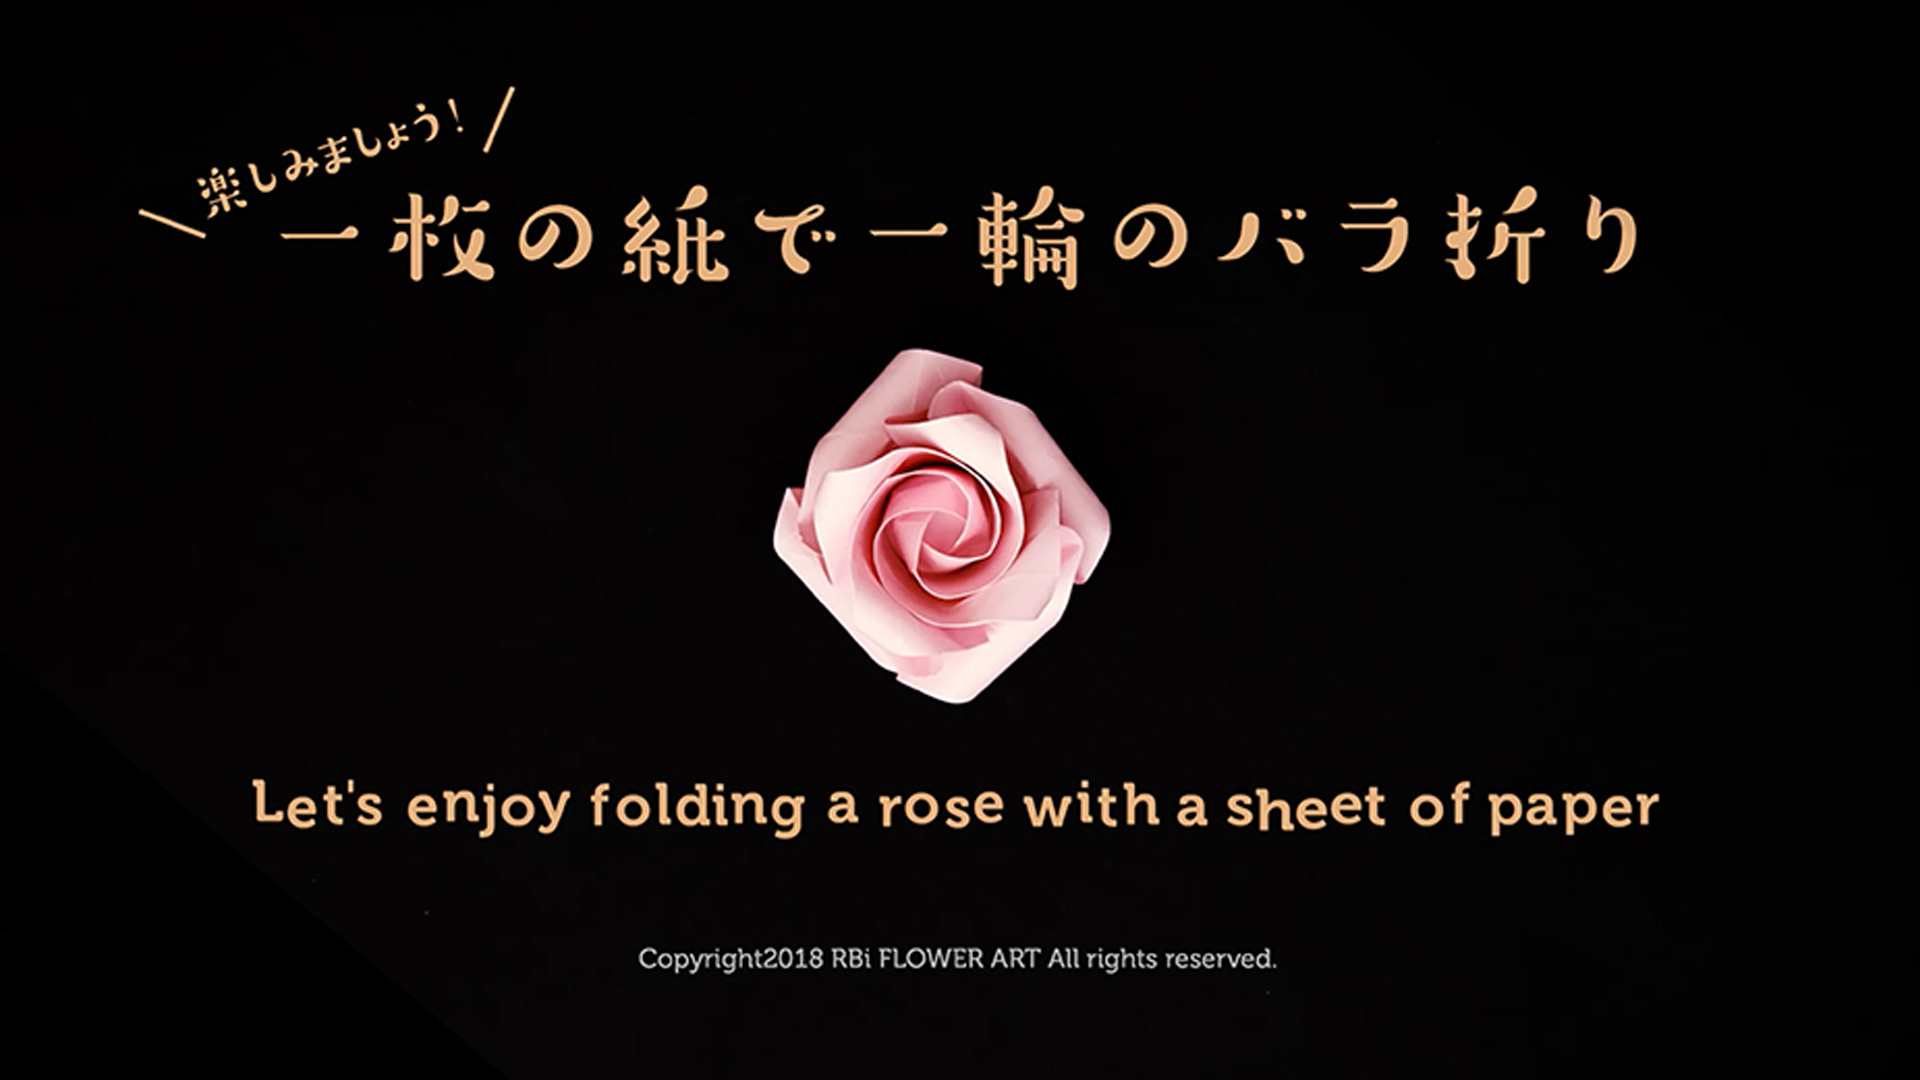 "Released on March 30th ""Online Rose Folding Video"